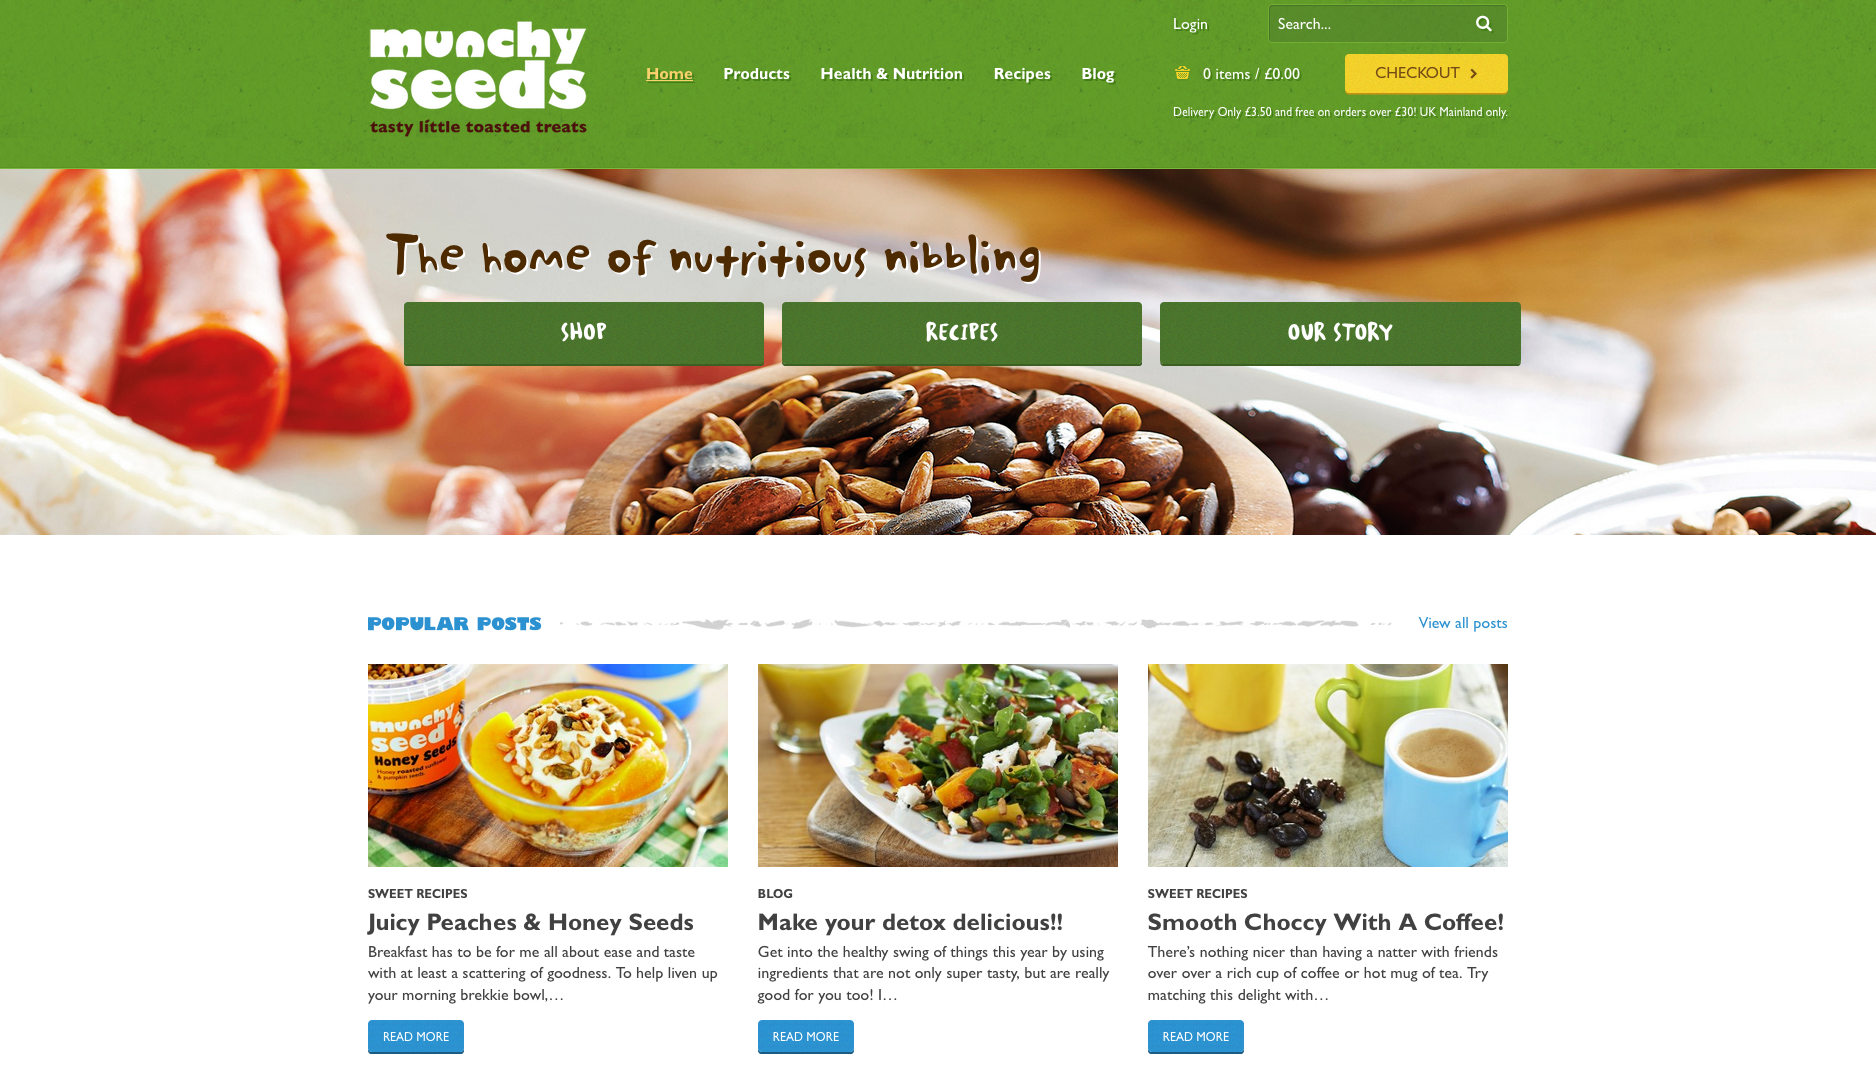 Munchy seeds website refresh